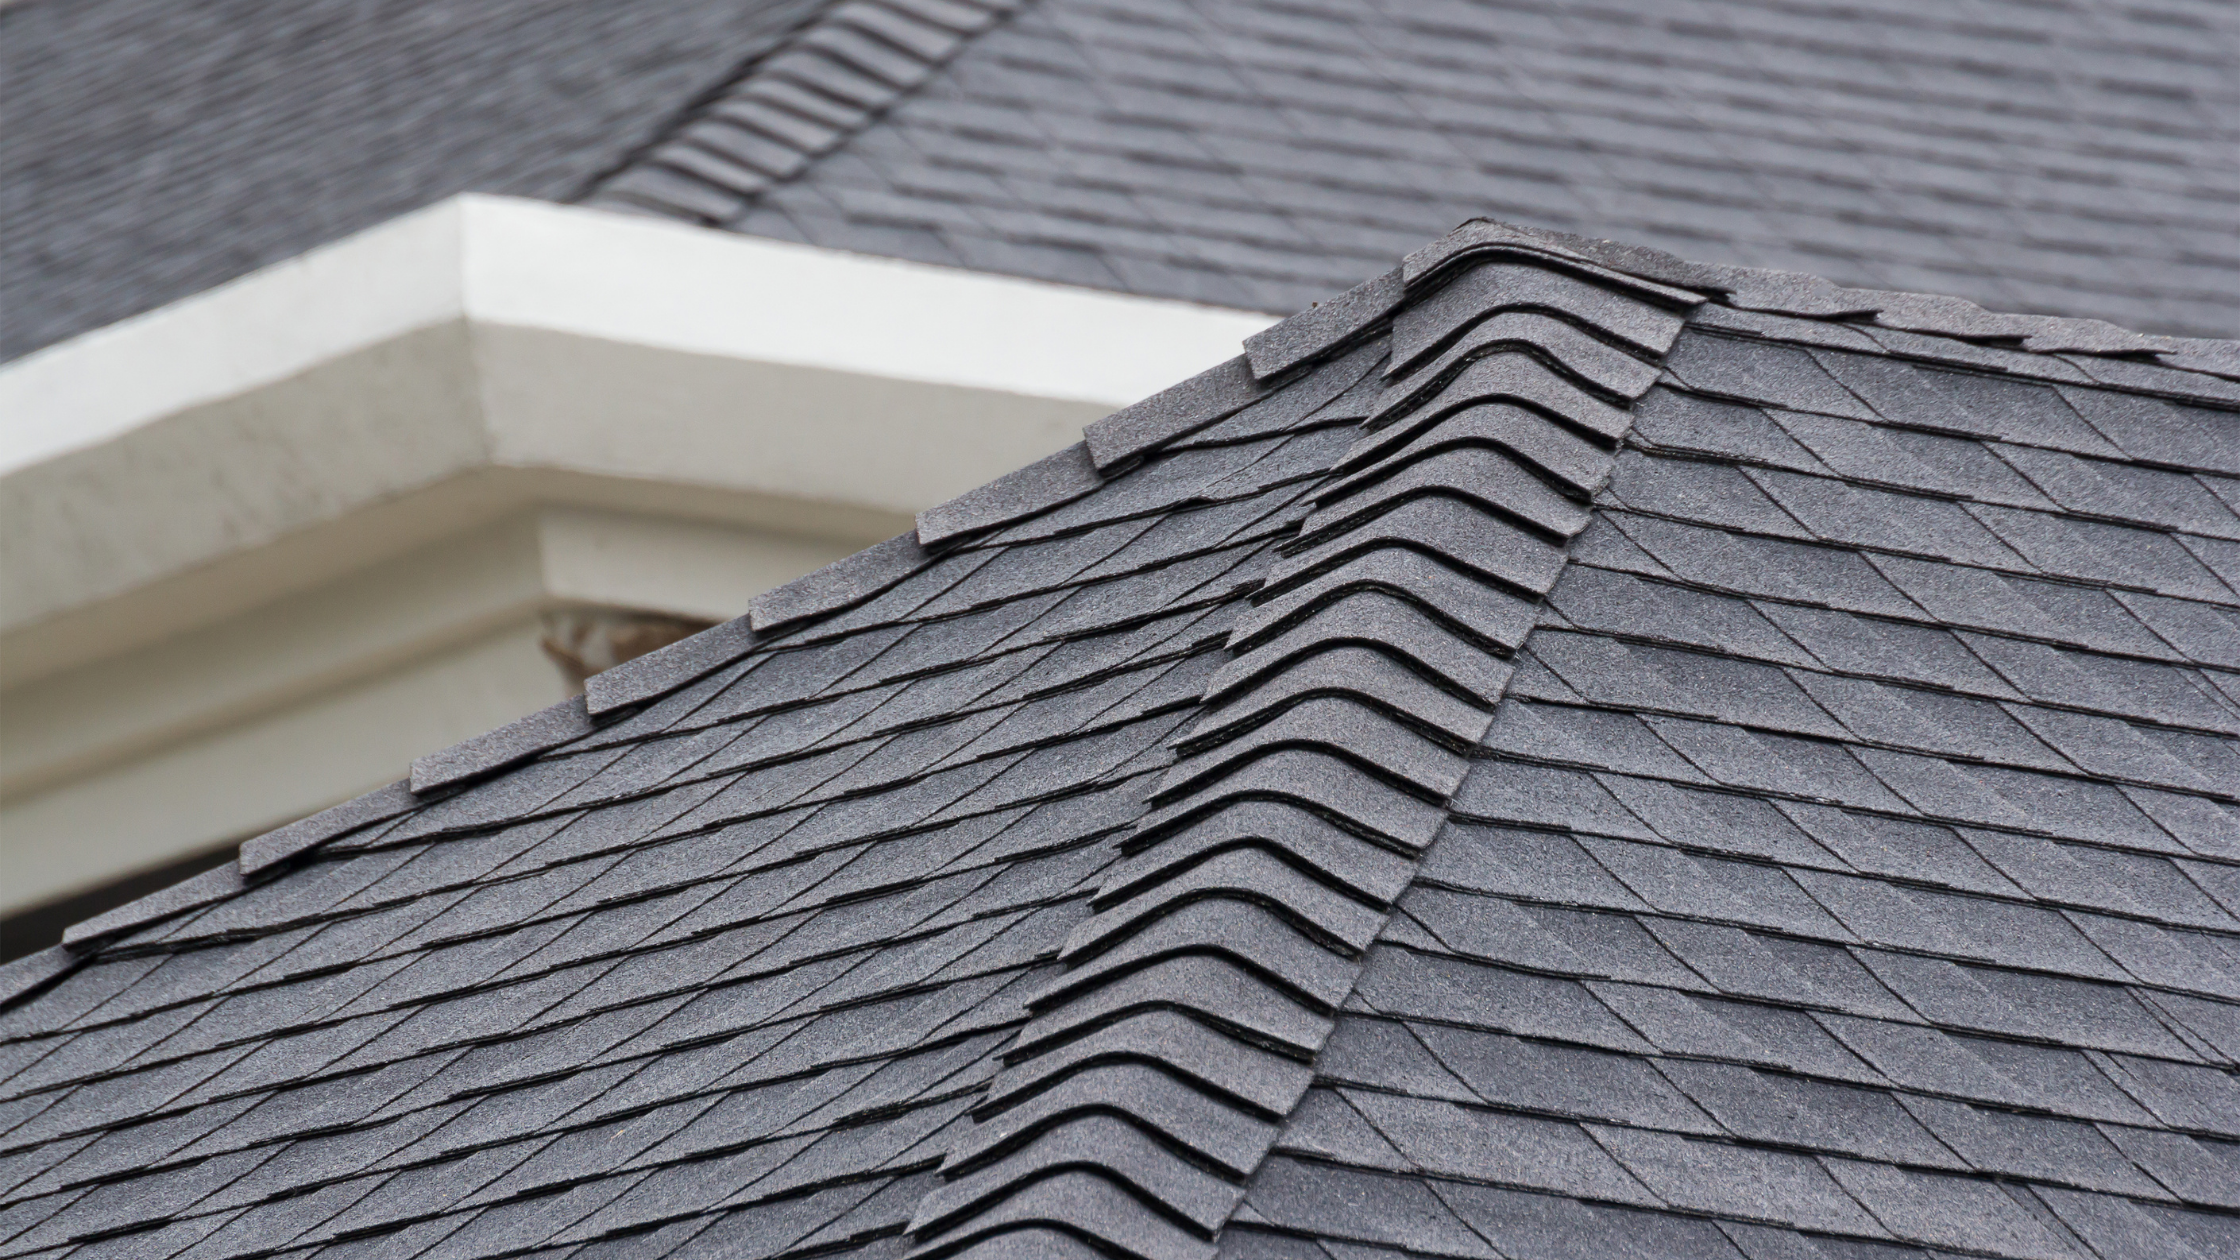 What Are Ridge Caps On A Roof And What Do They Do?